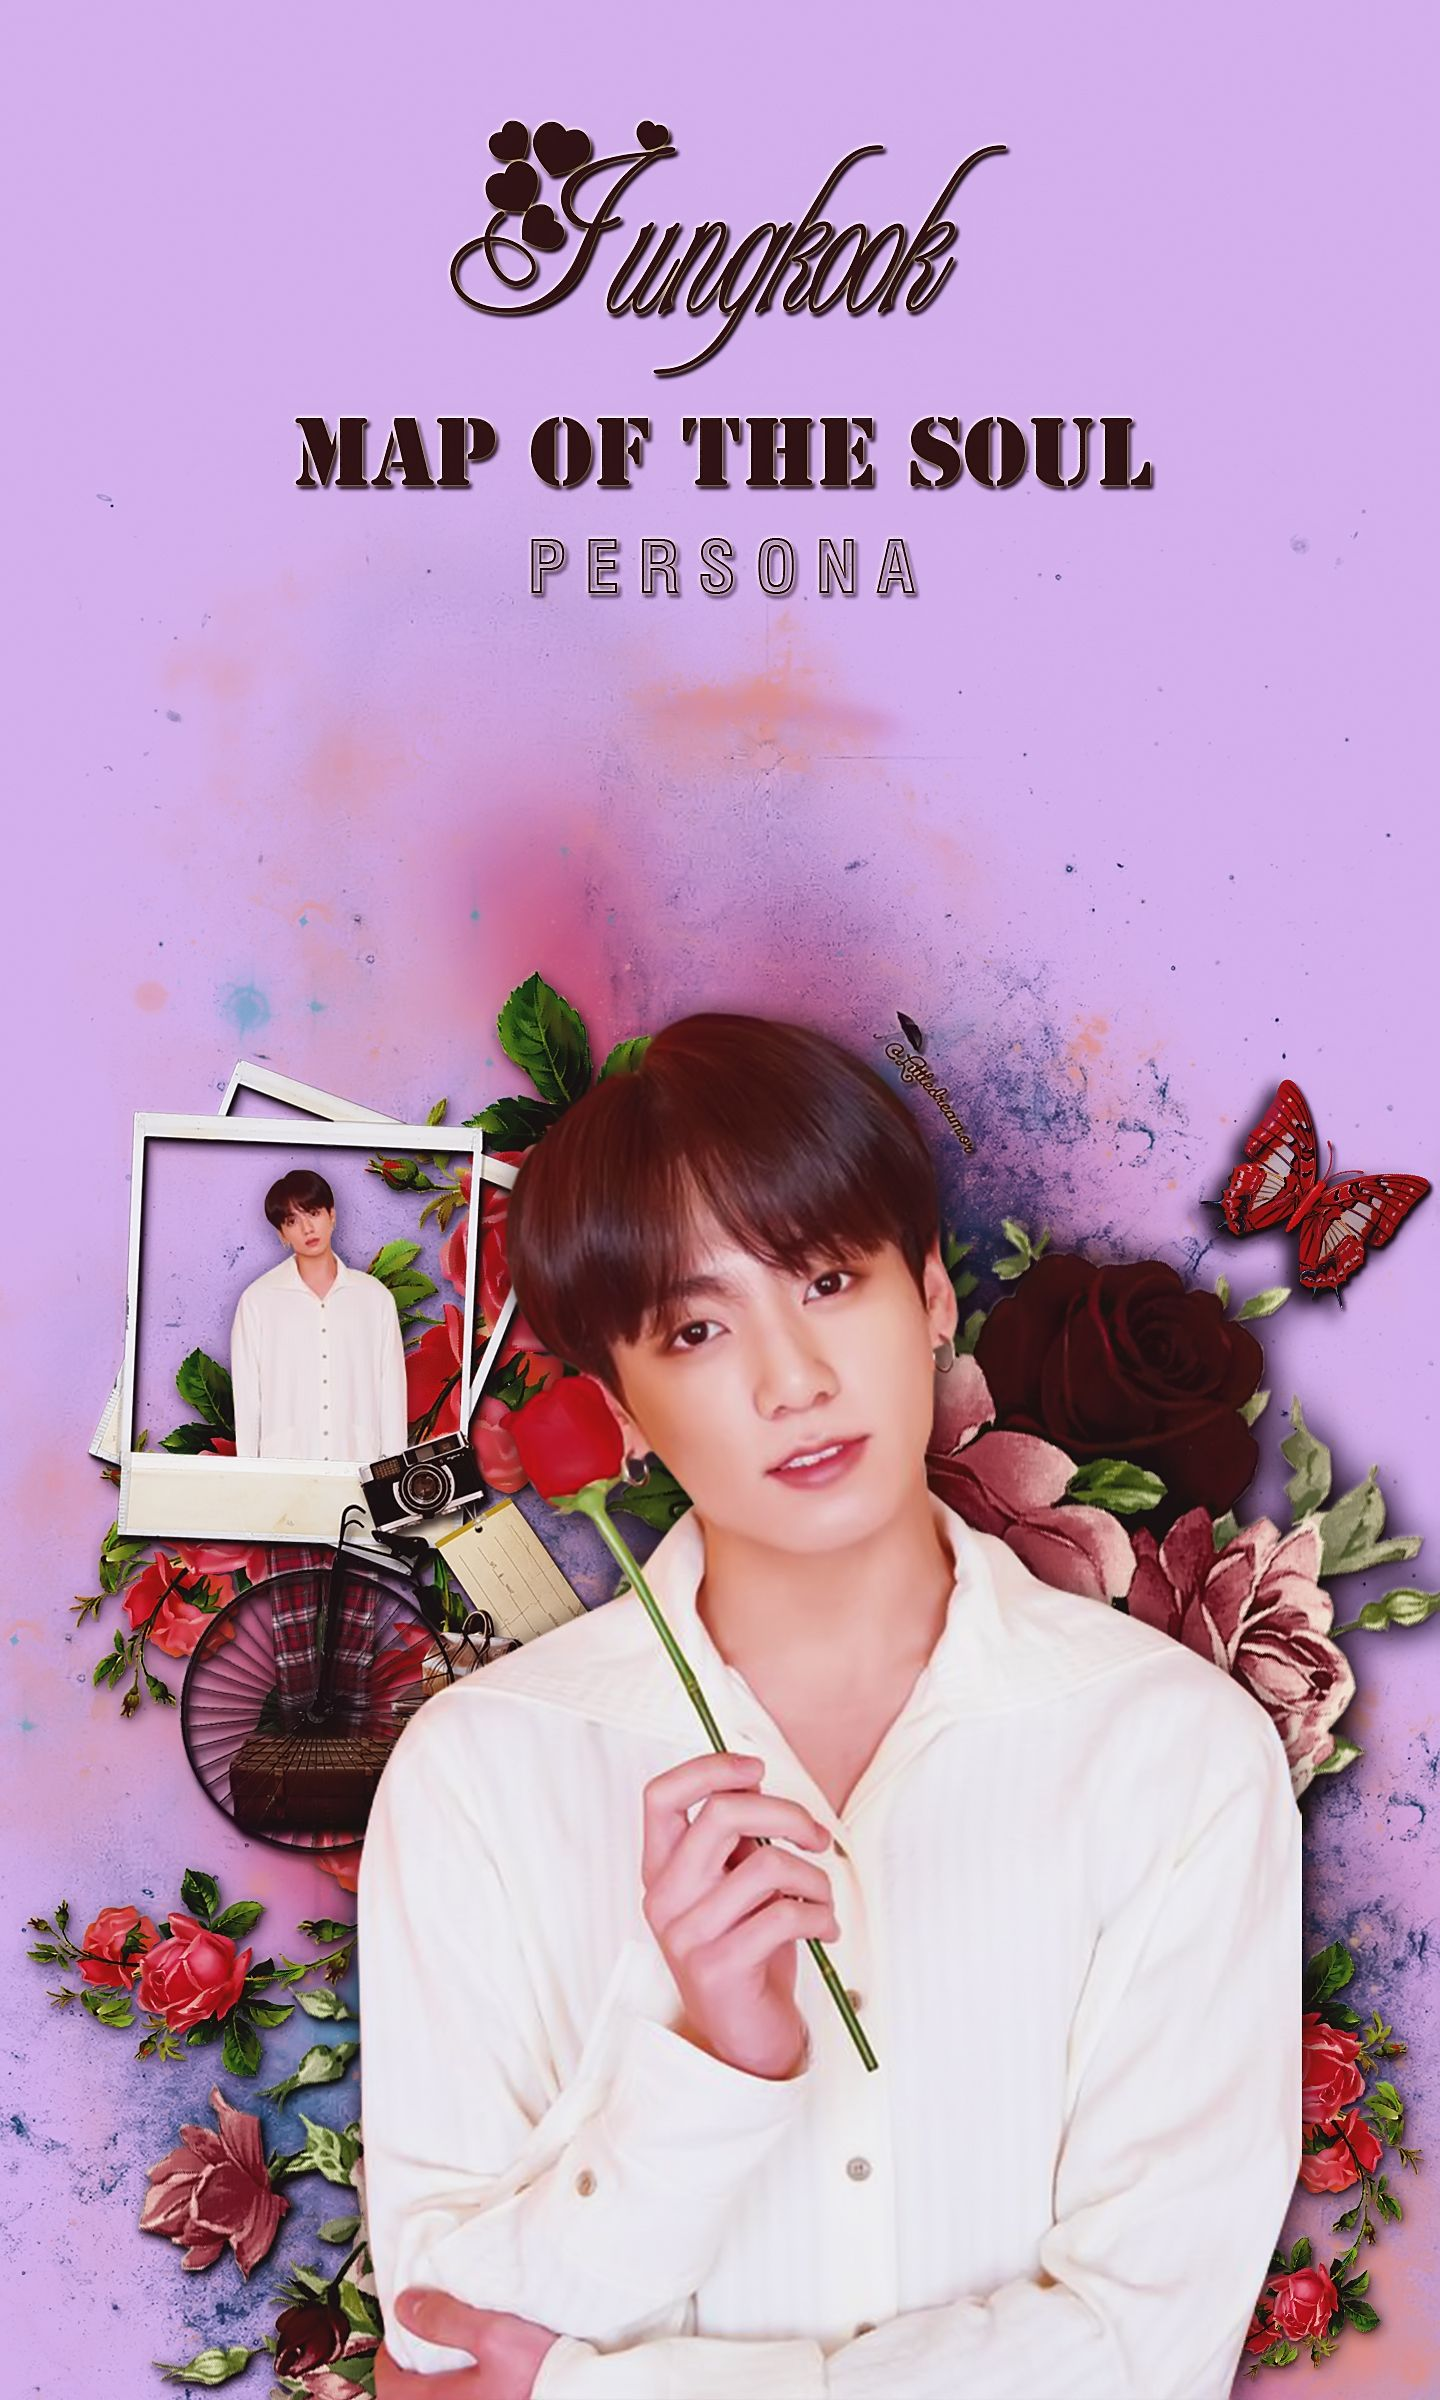 Persona Mapofthesoul Army Bts Edit Jungkook Kpop